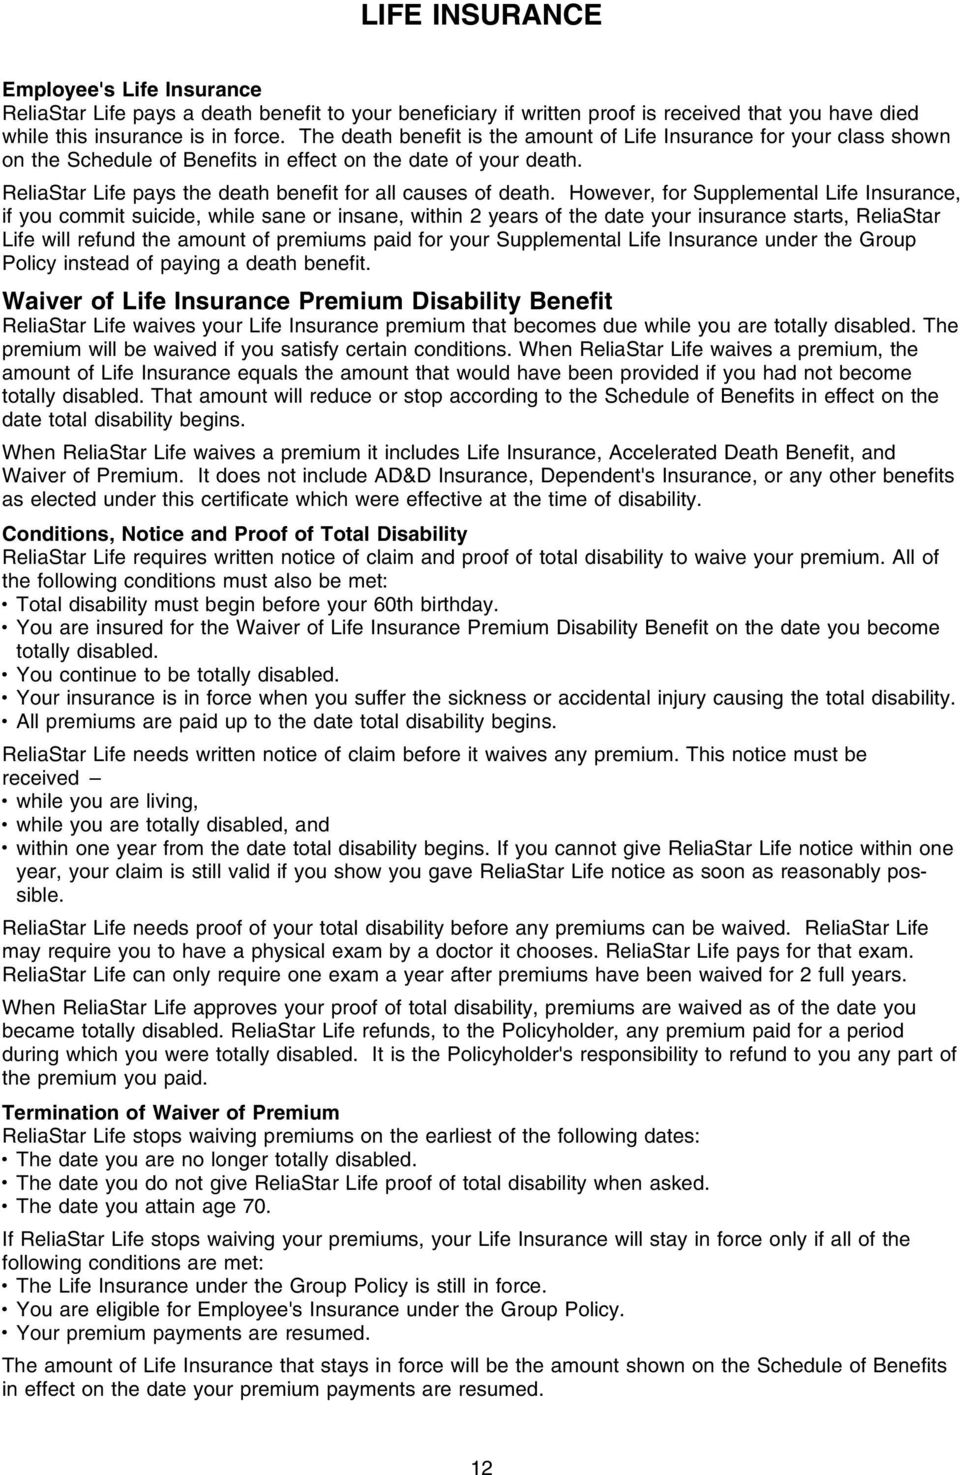 However, for Supplemental Life Insurance, if you commit suicide, while sane or insane, within 2 years of the date your insurance starts, ReliaStar Life will refund the amount of premiums paid for